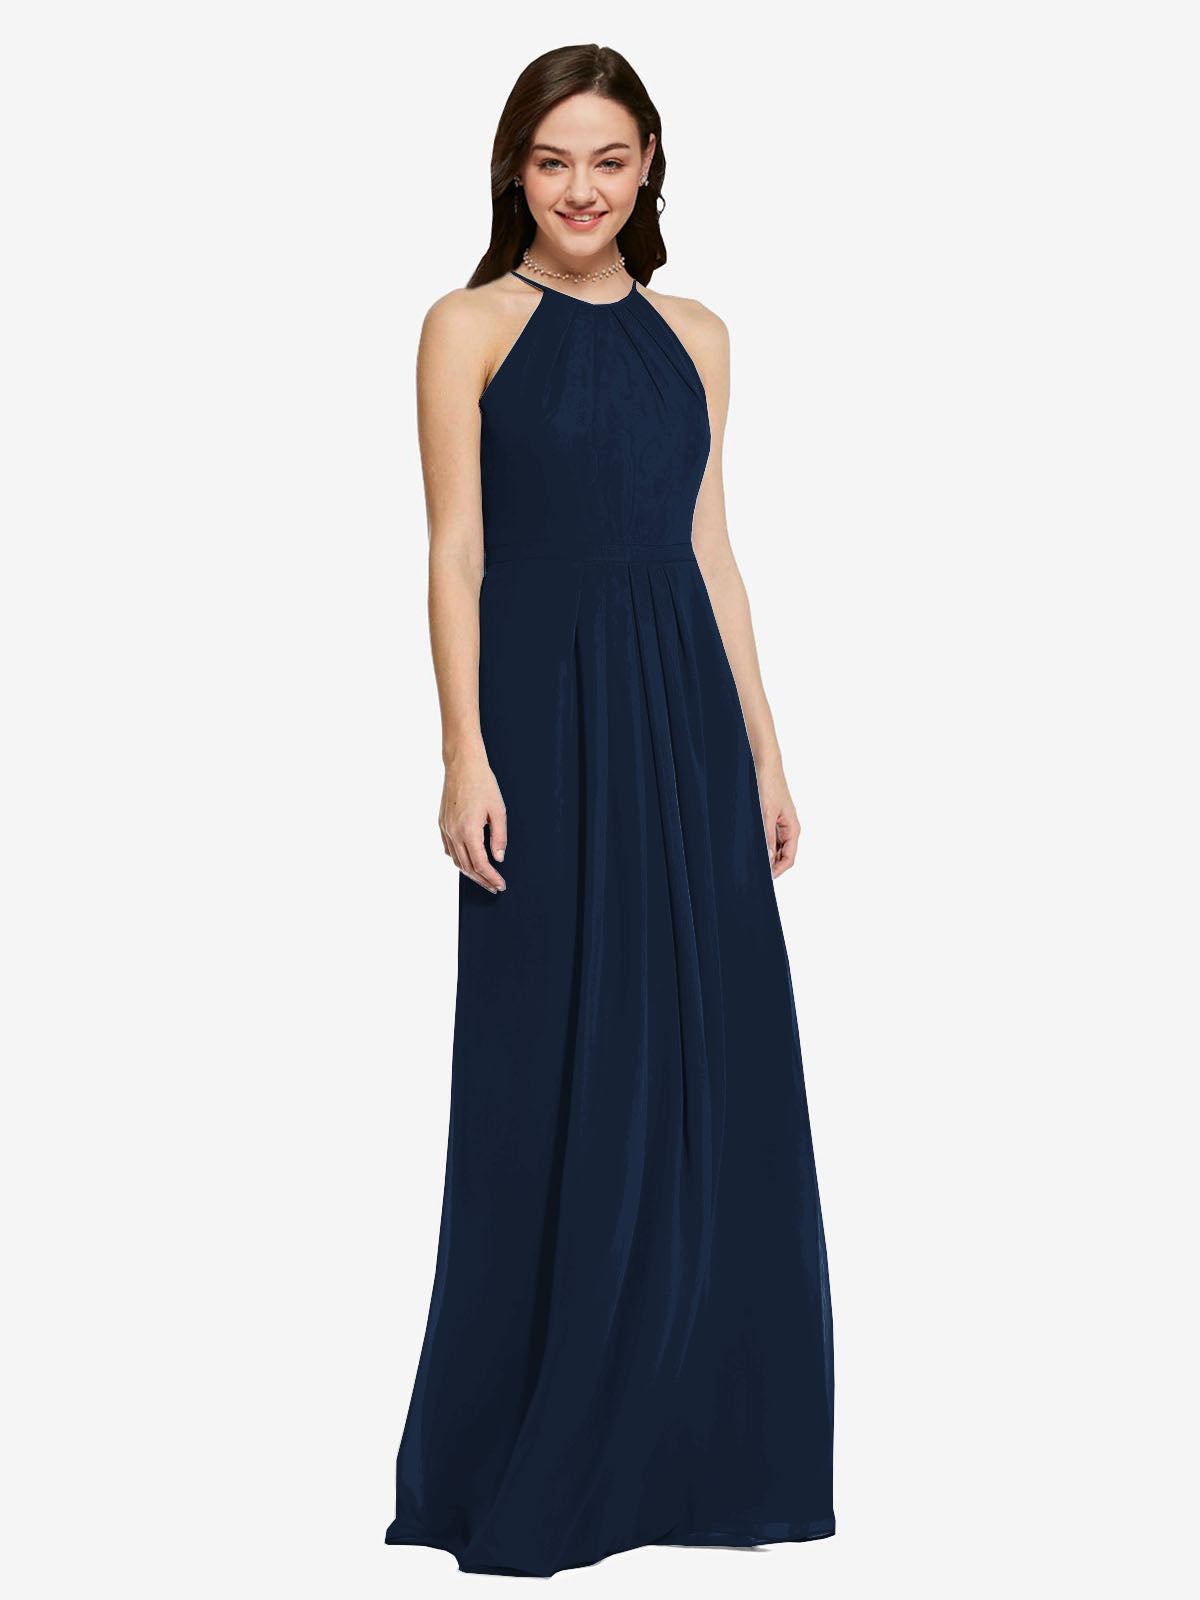 Long Sheath High Neck Halter Sleeveless Dark Navy Chiffon Bridesmaid Dress Koloti